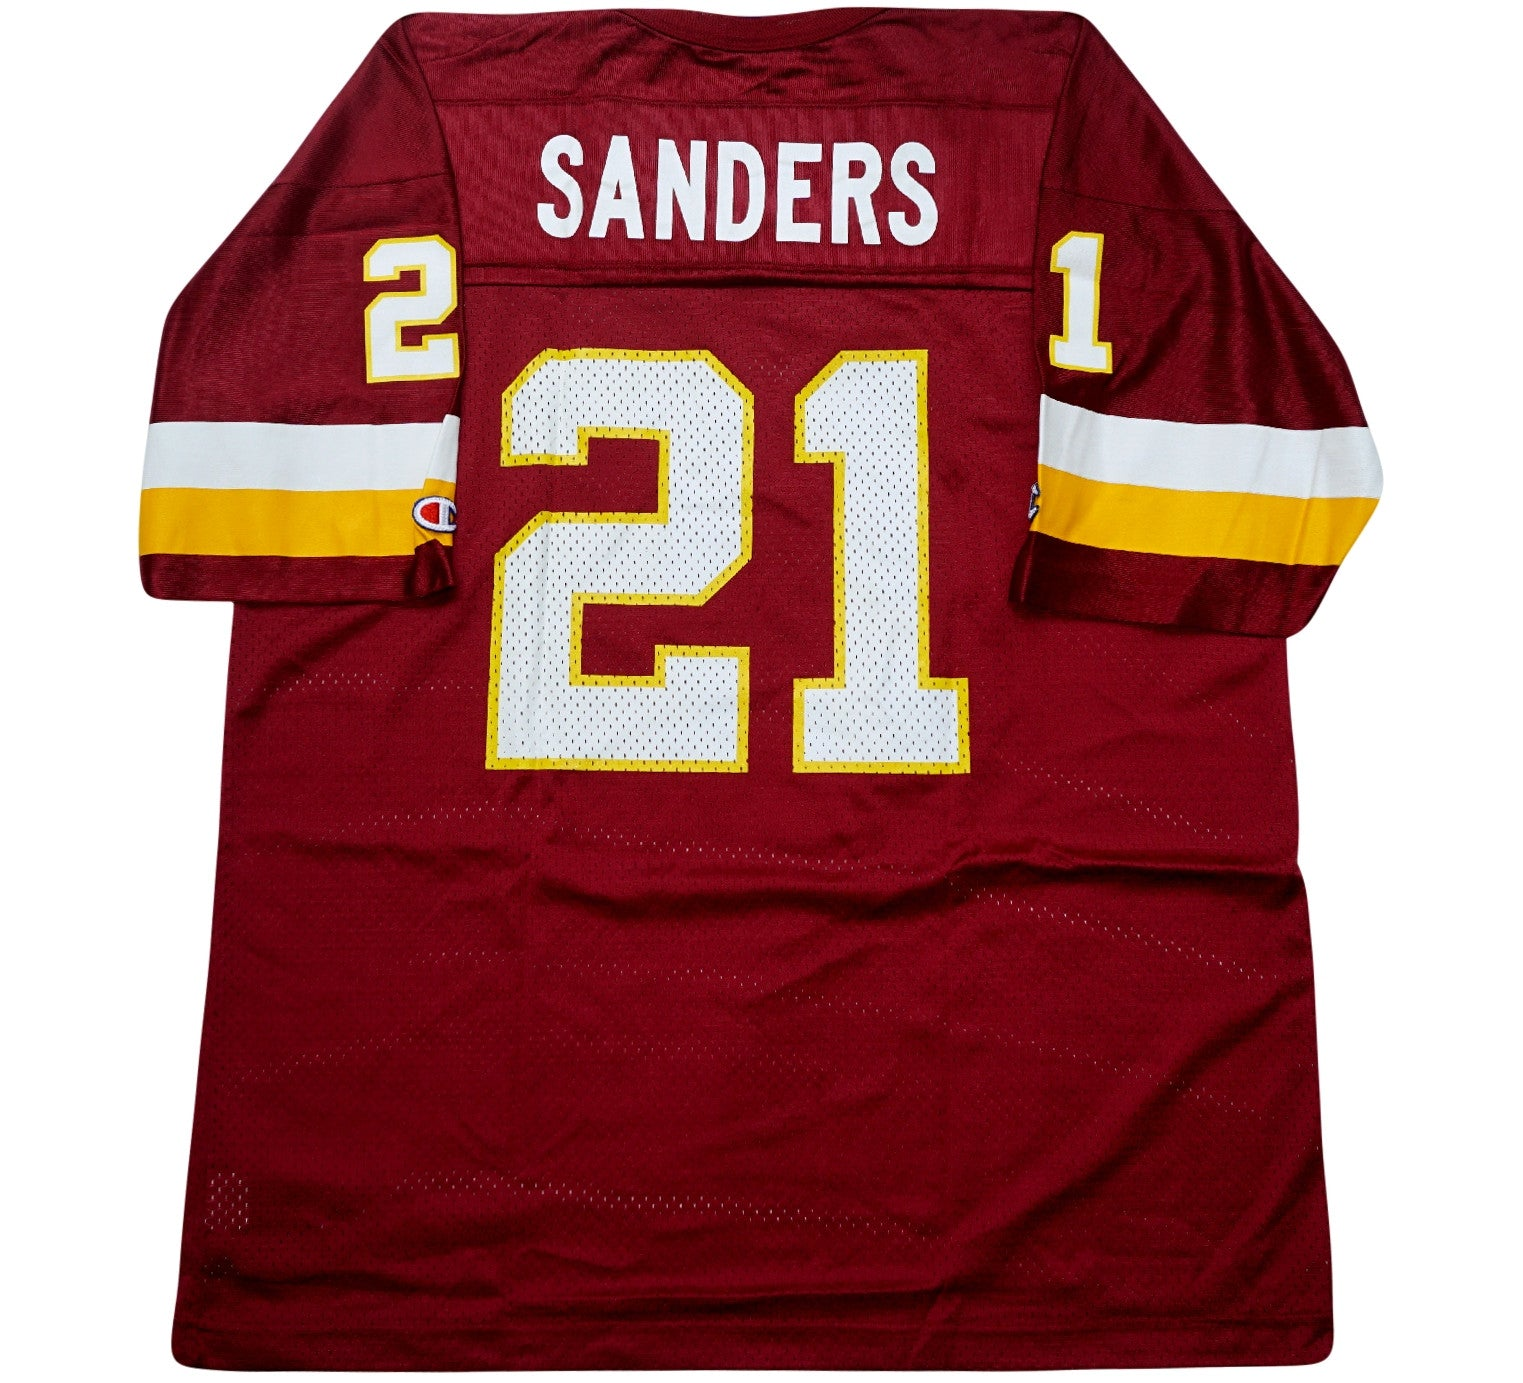 Deion Sanders Redskins Jersey - And Still